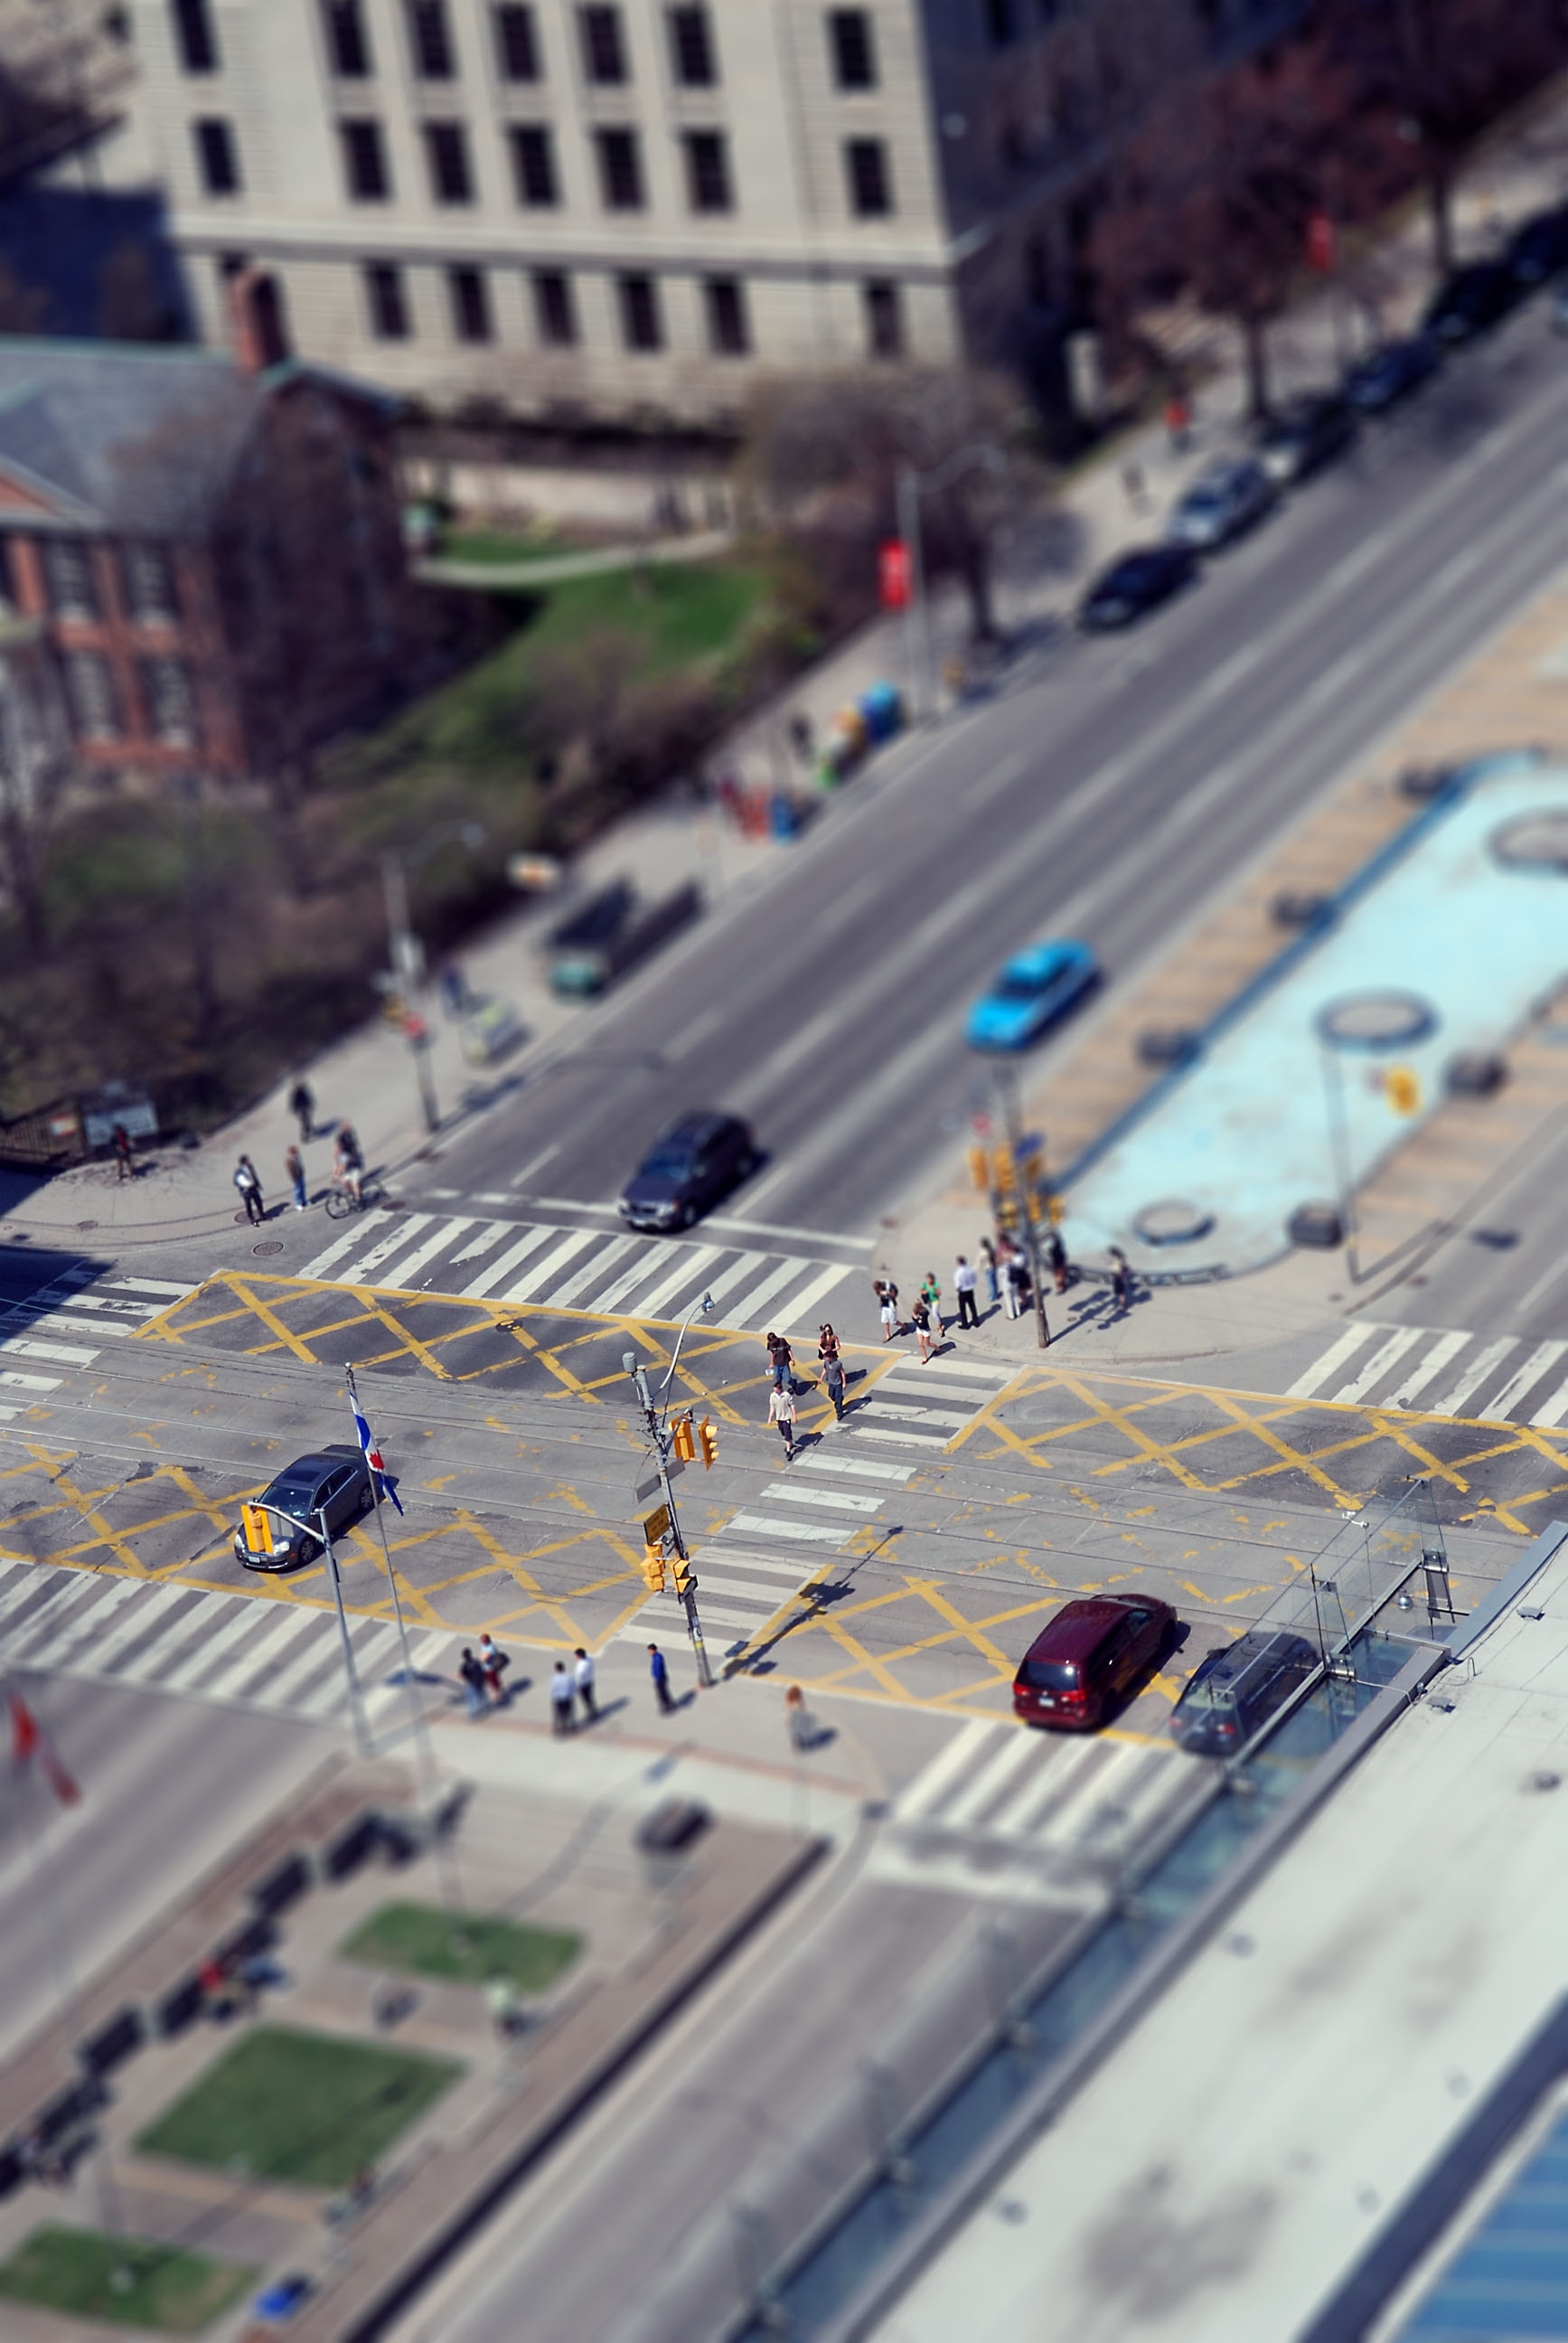 tilt-shift photo from Toronto Canada